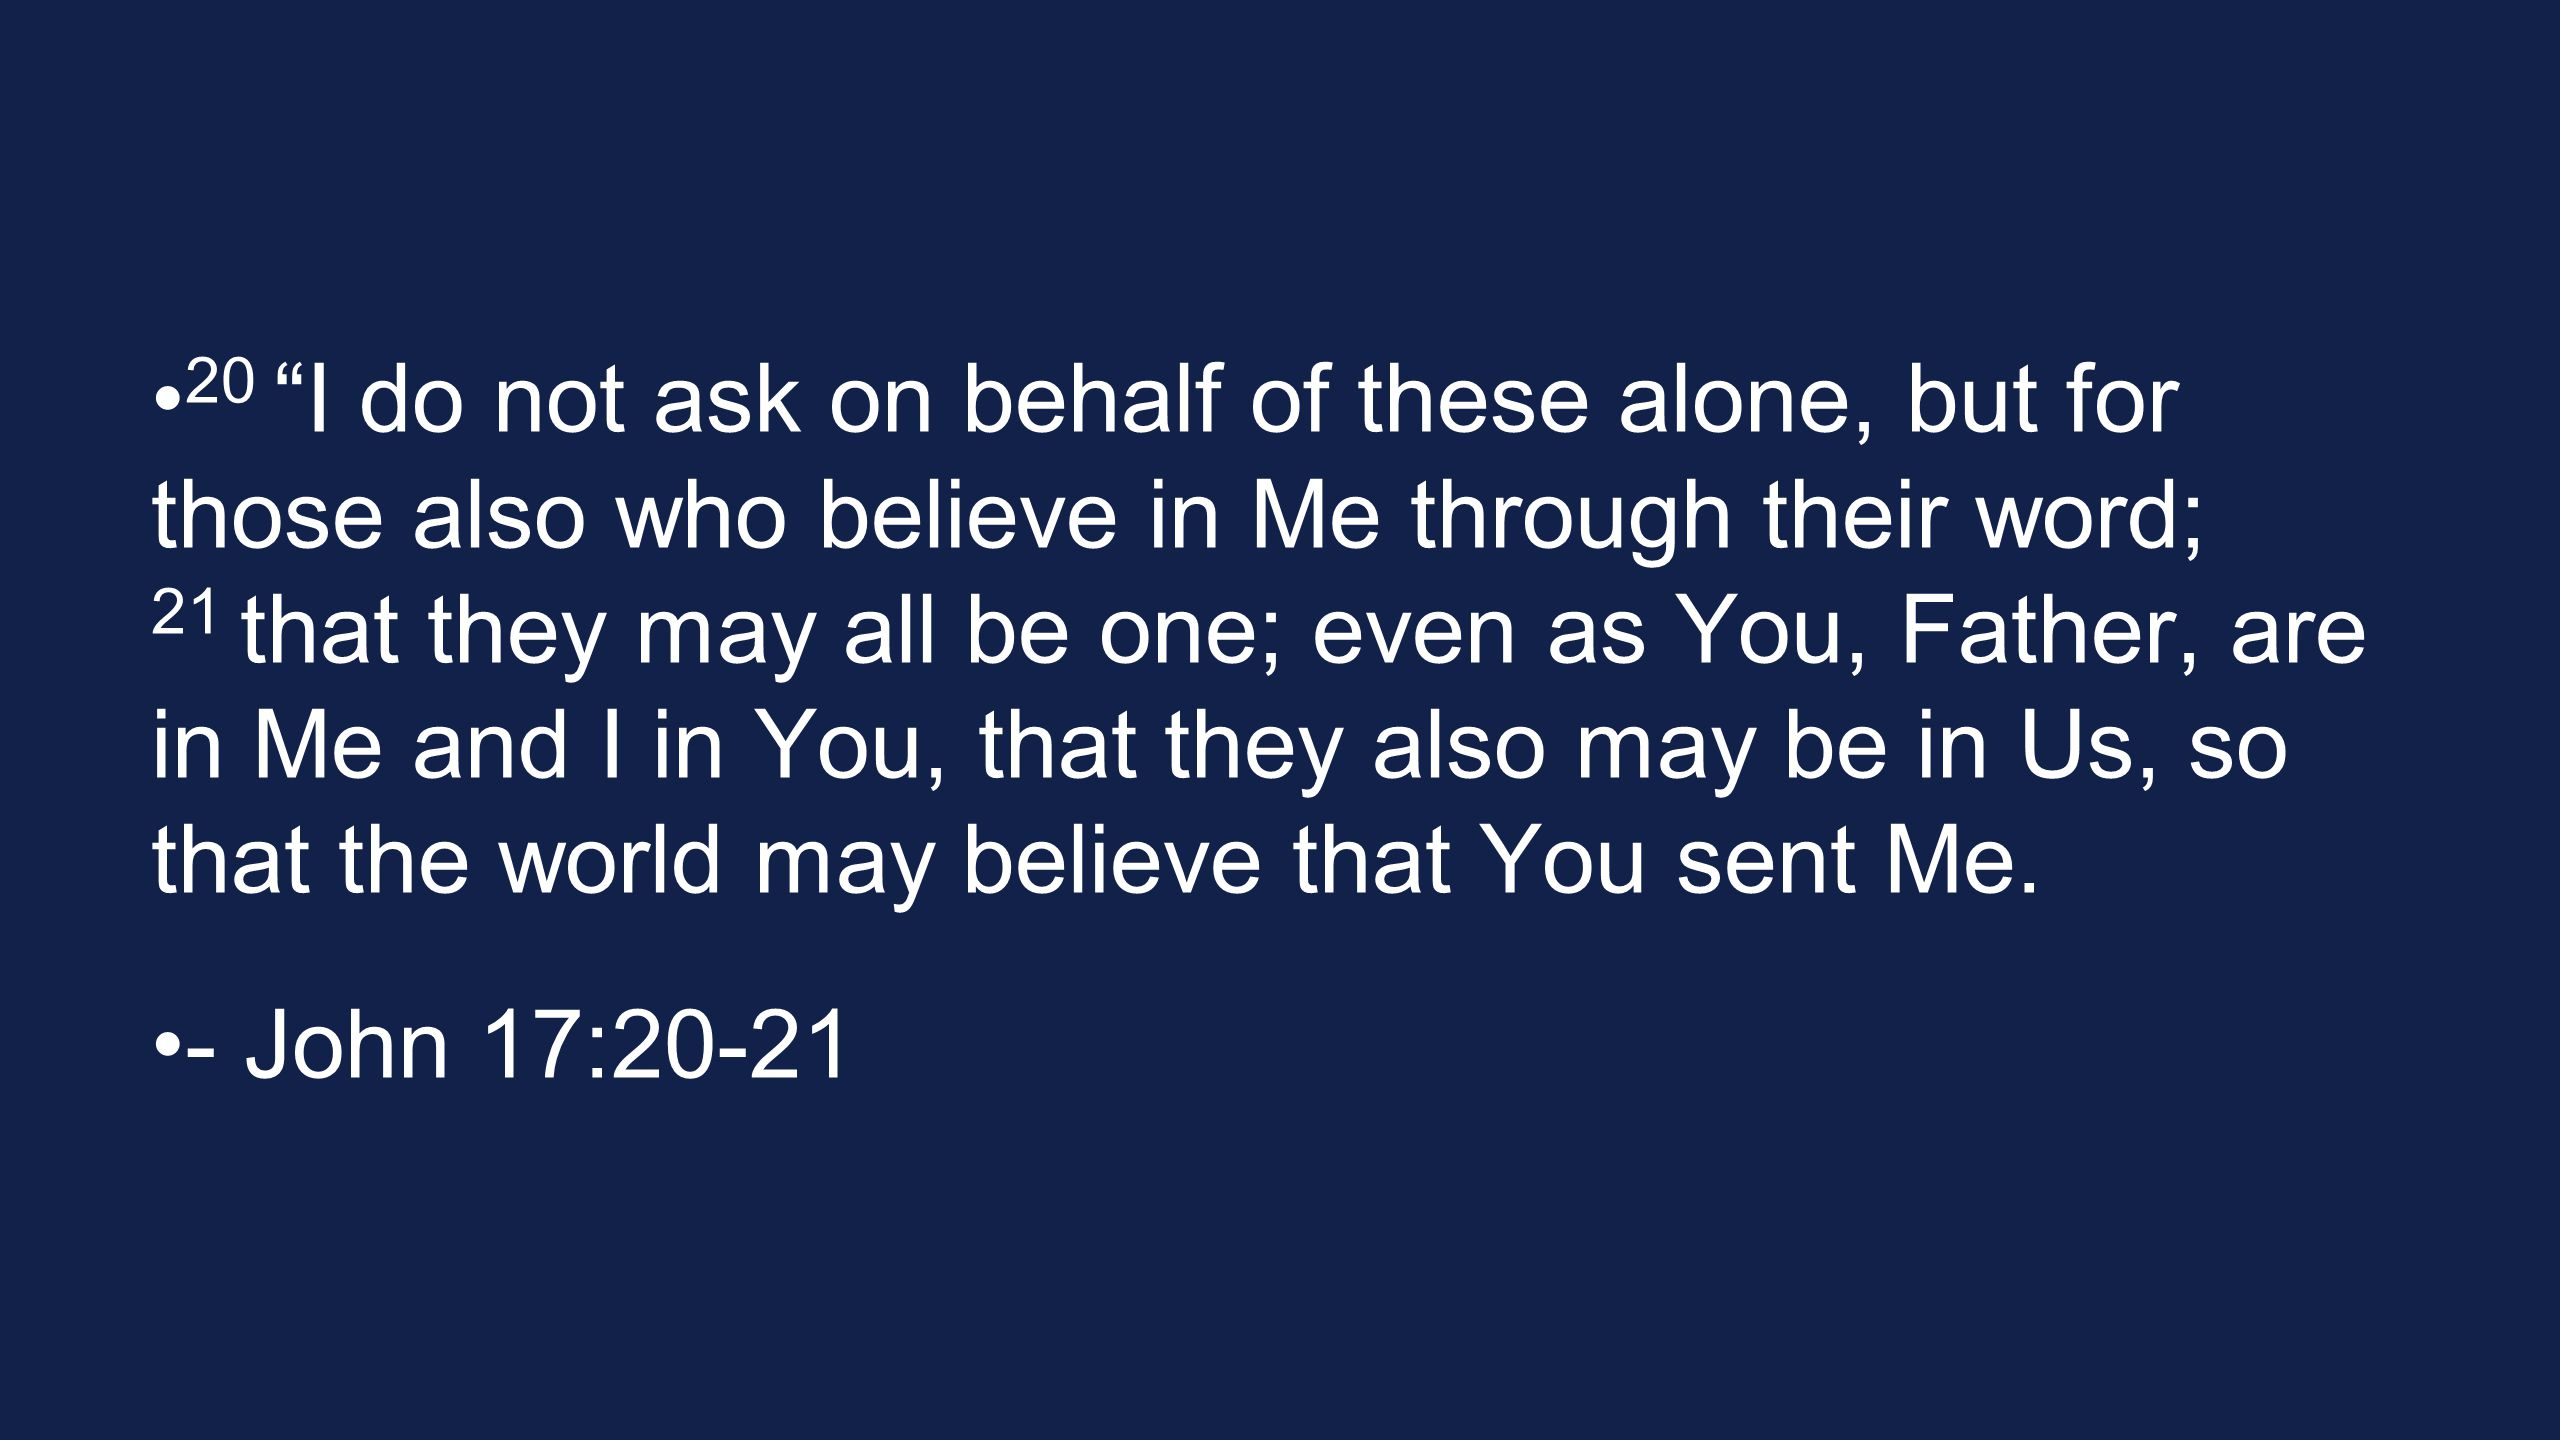 20 I do not ask on behalf of these alone, but for those also who believe in Me through their word; 21 that they may all be one; even as You, Father, are in Me and I in You, that they also may be in Us, so that the world may believe that You sent Me.